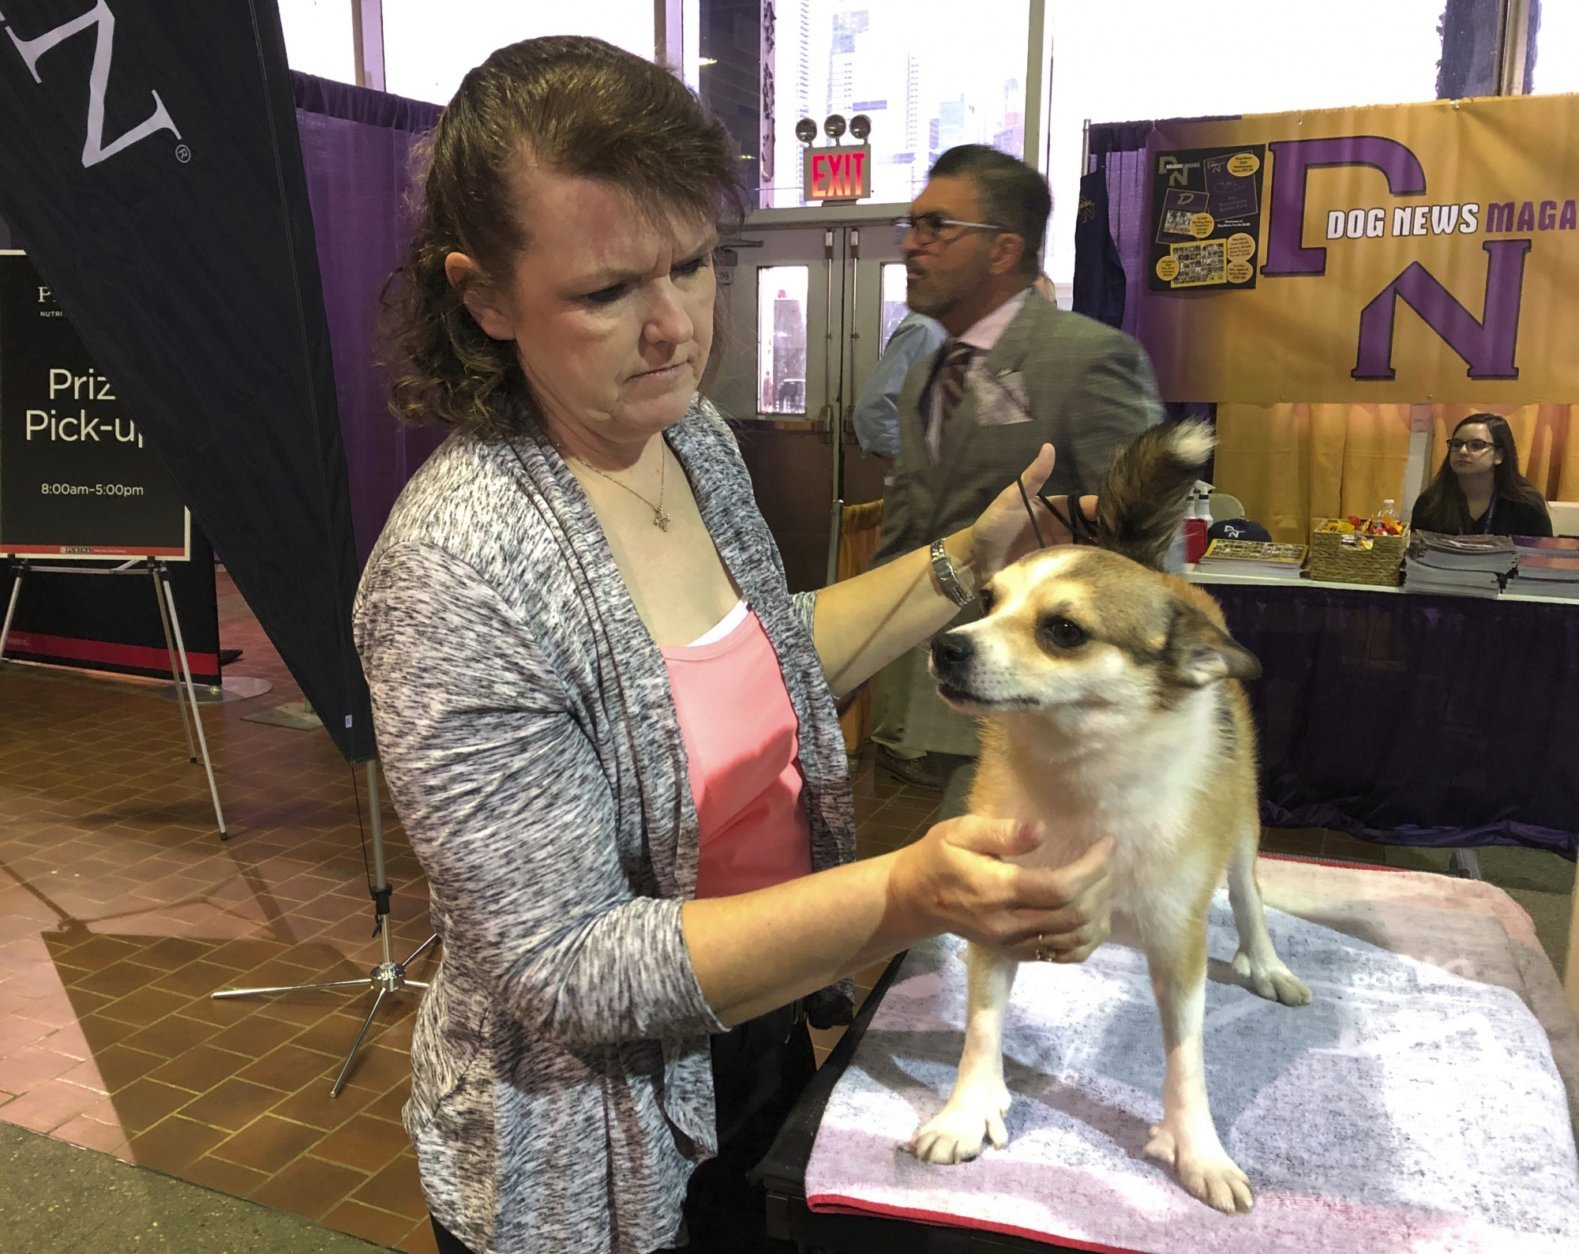 Tracy Rousseau of Franktown, Colo., pets Eva, a Norwegian lundehund, as they wait to compete at the Westminster Kennel Club dog show in New York on Monday, Feb. 11, 2019. (AP Photo/Jennifer Peltz)